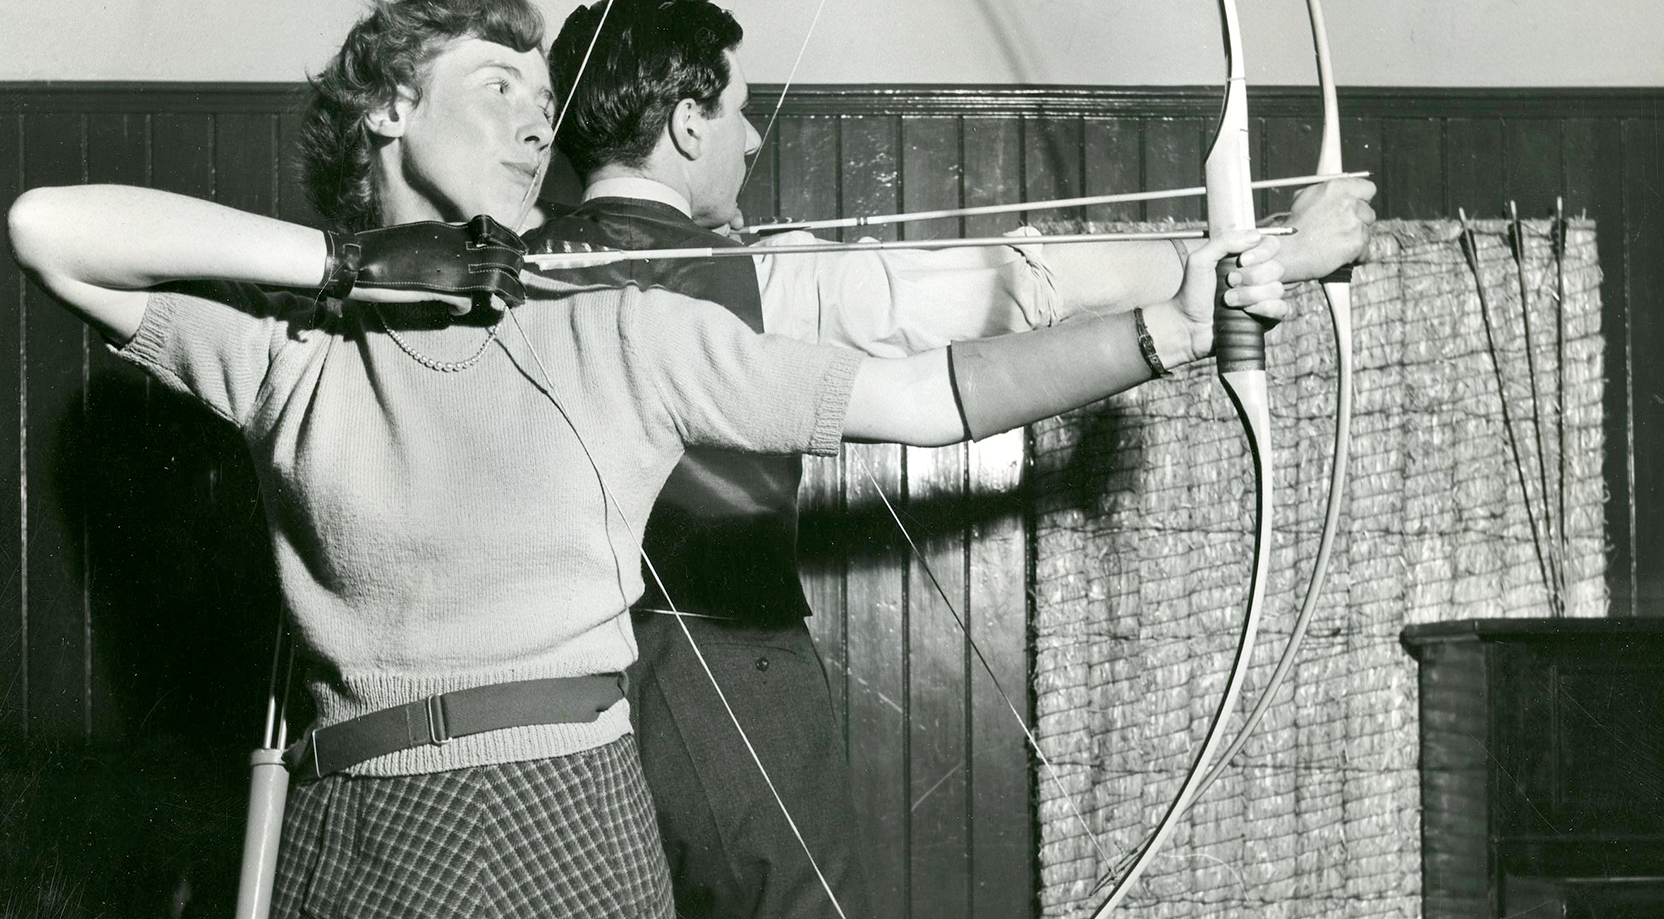 Black and white image of a male and female archer, holding a bow and arrow.